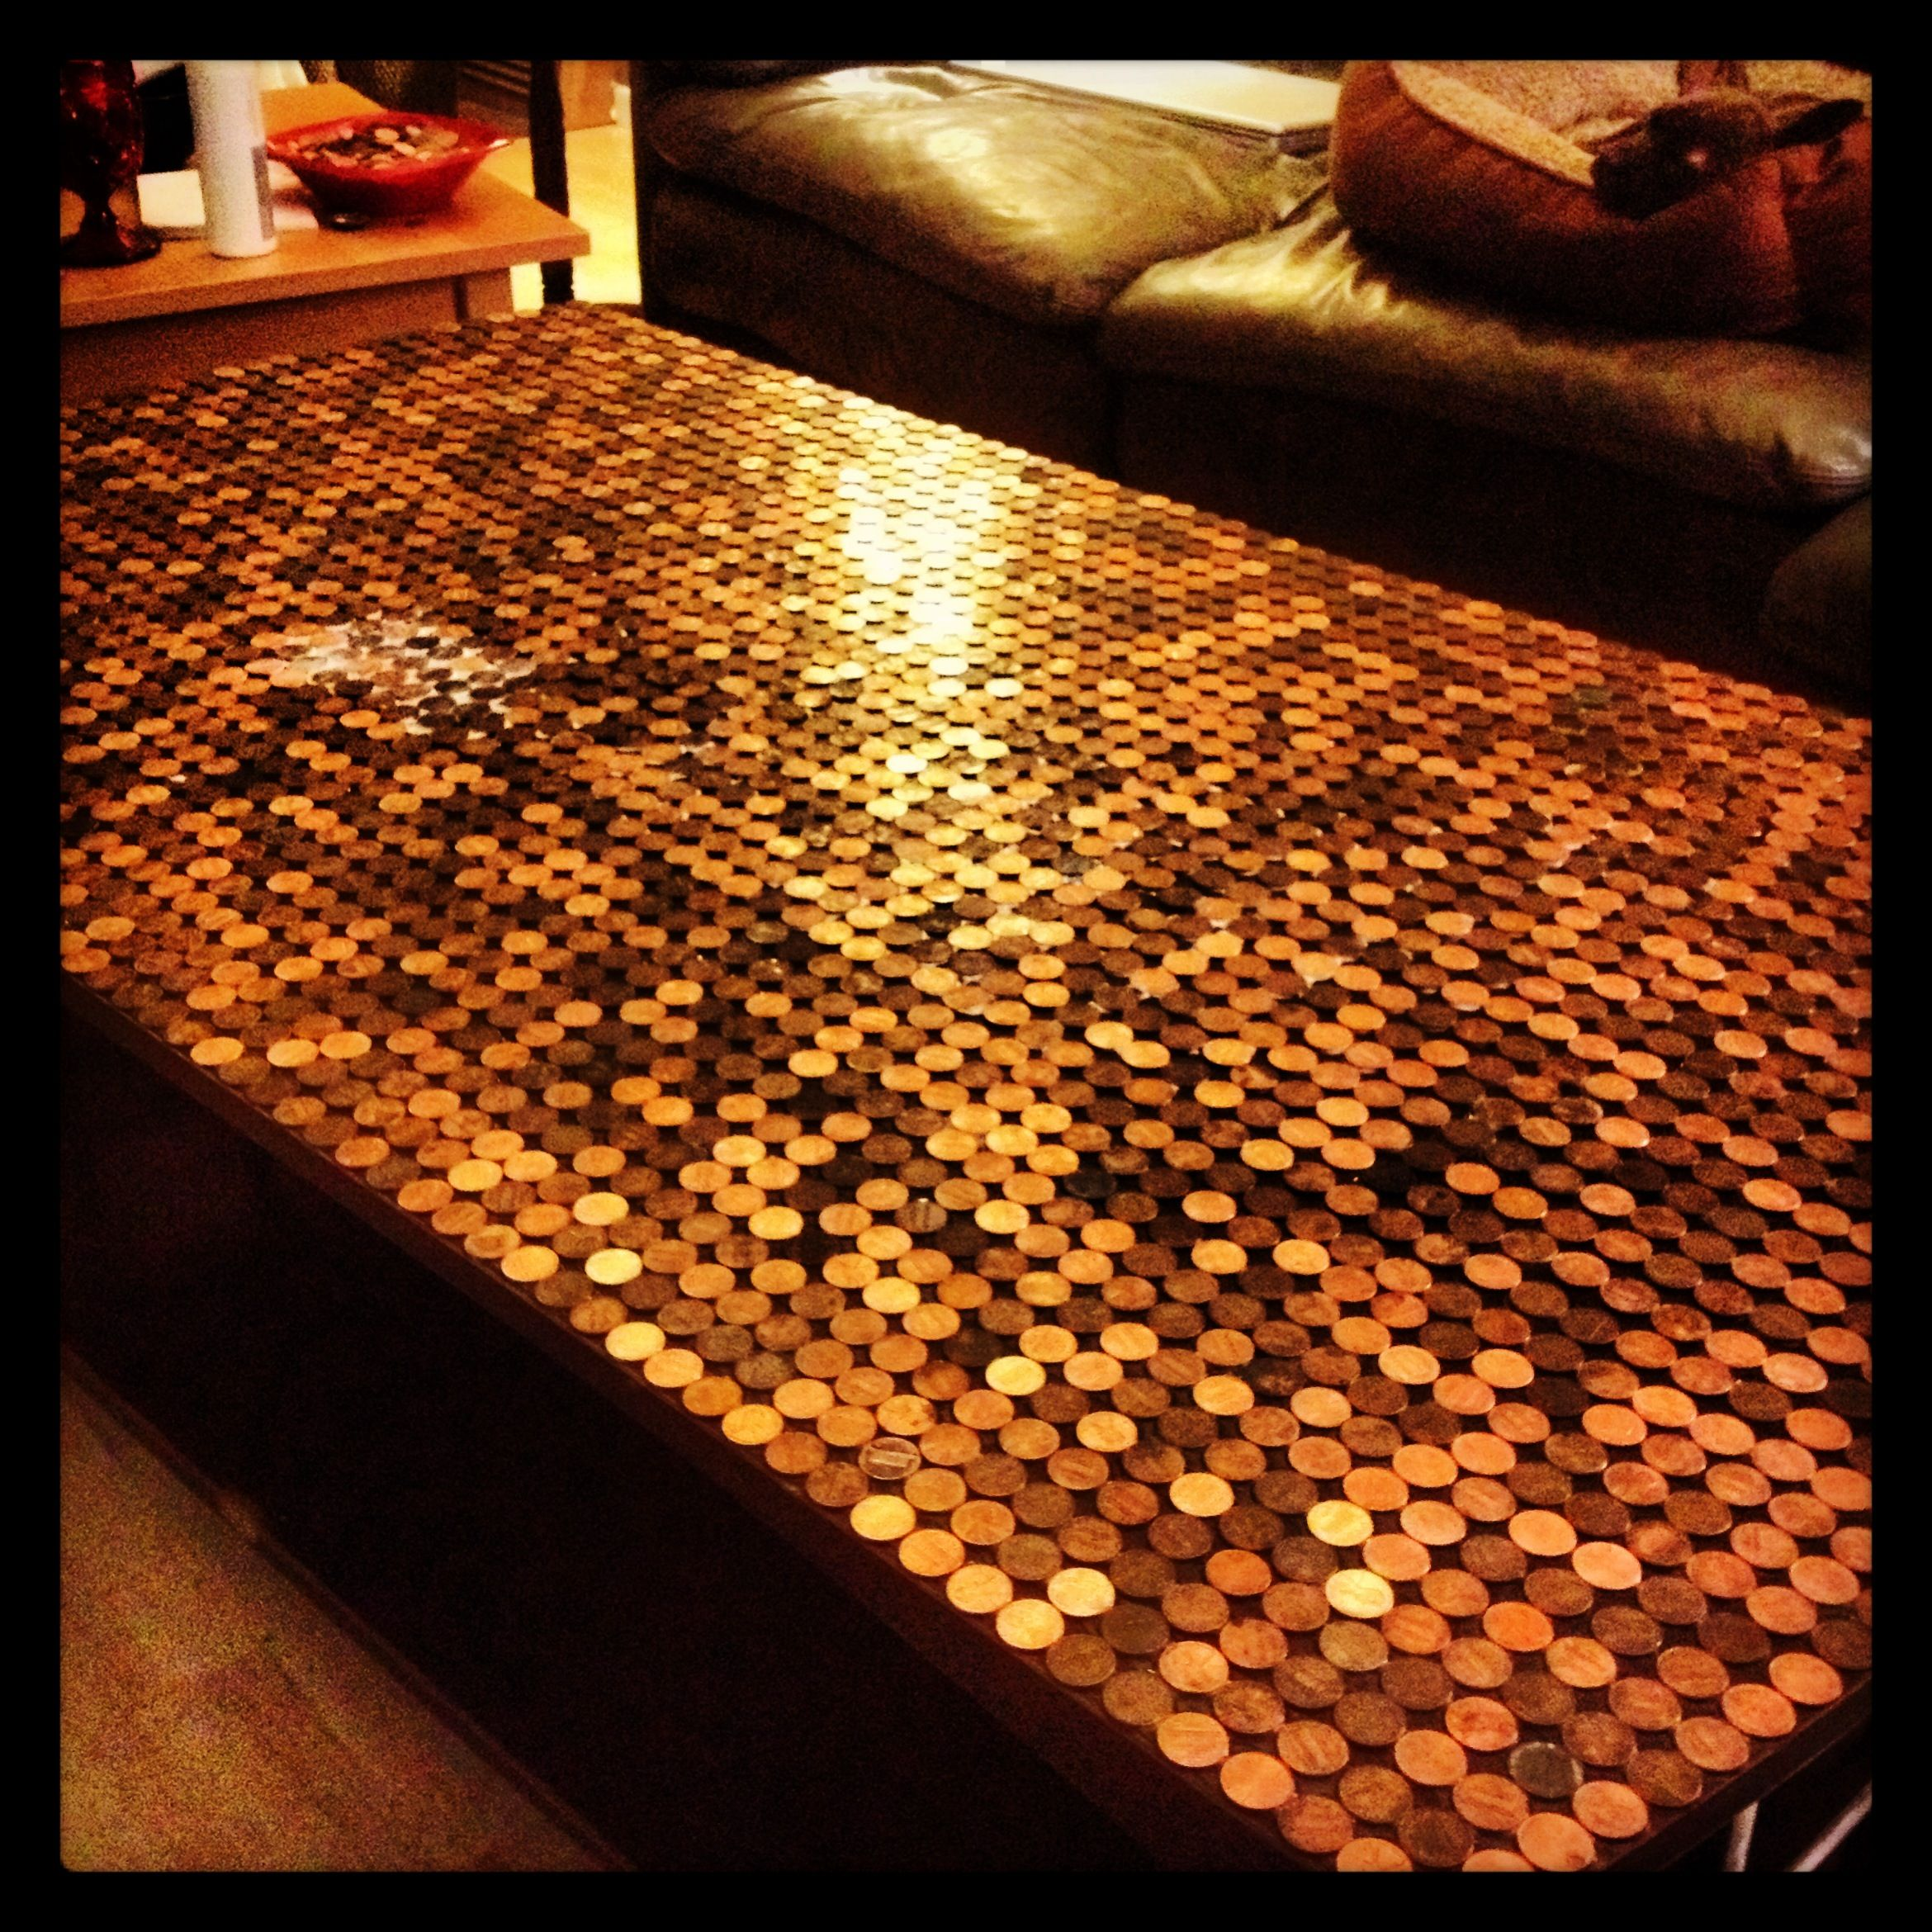 Penny Furniture: Pin On DIY'd